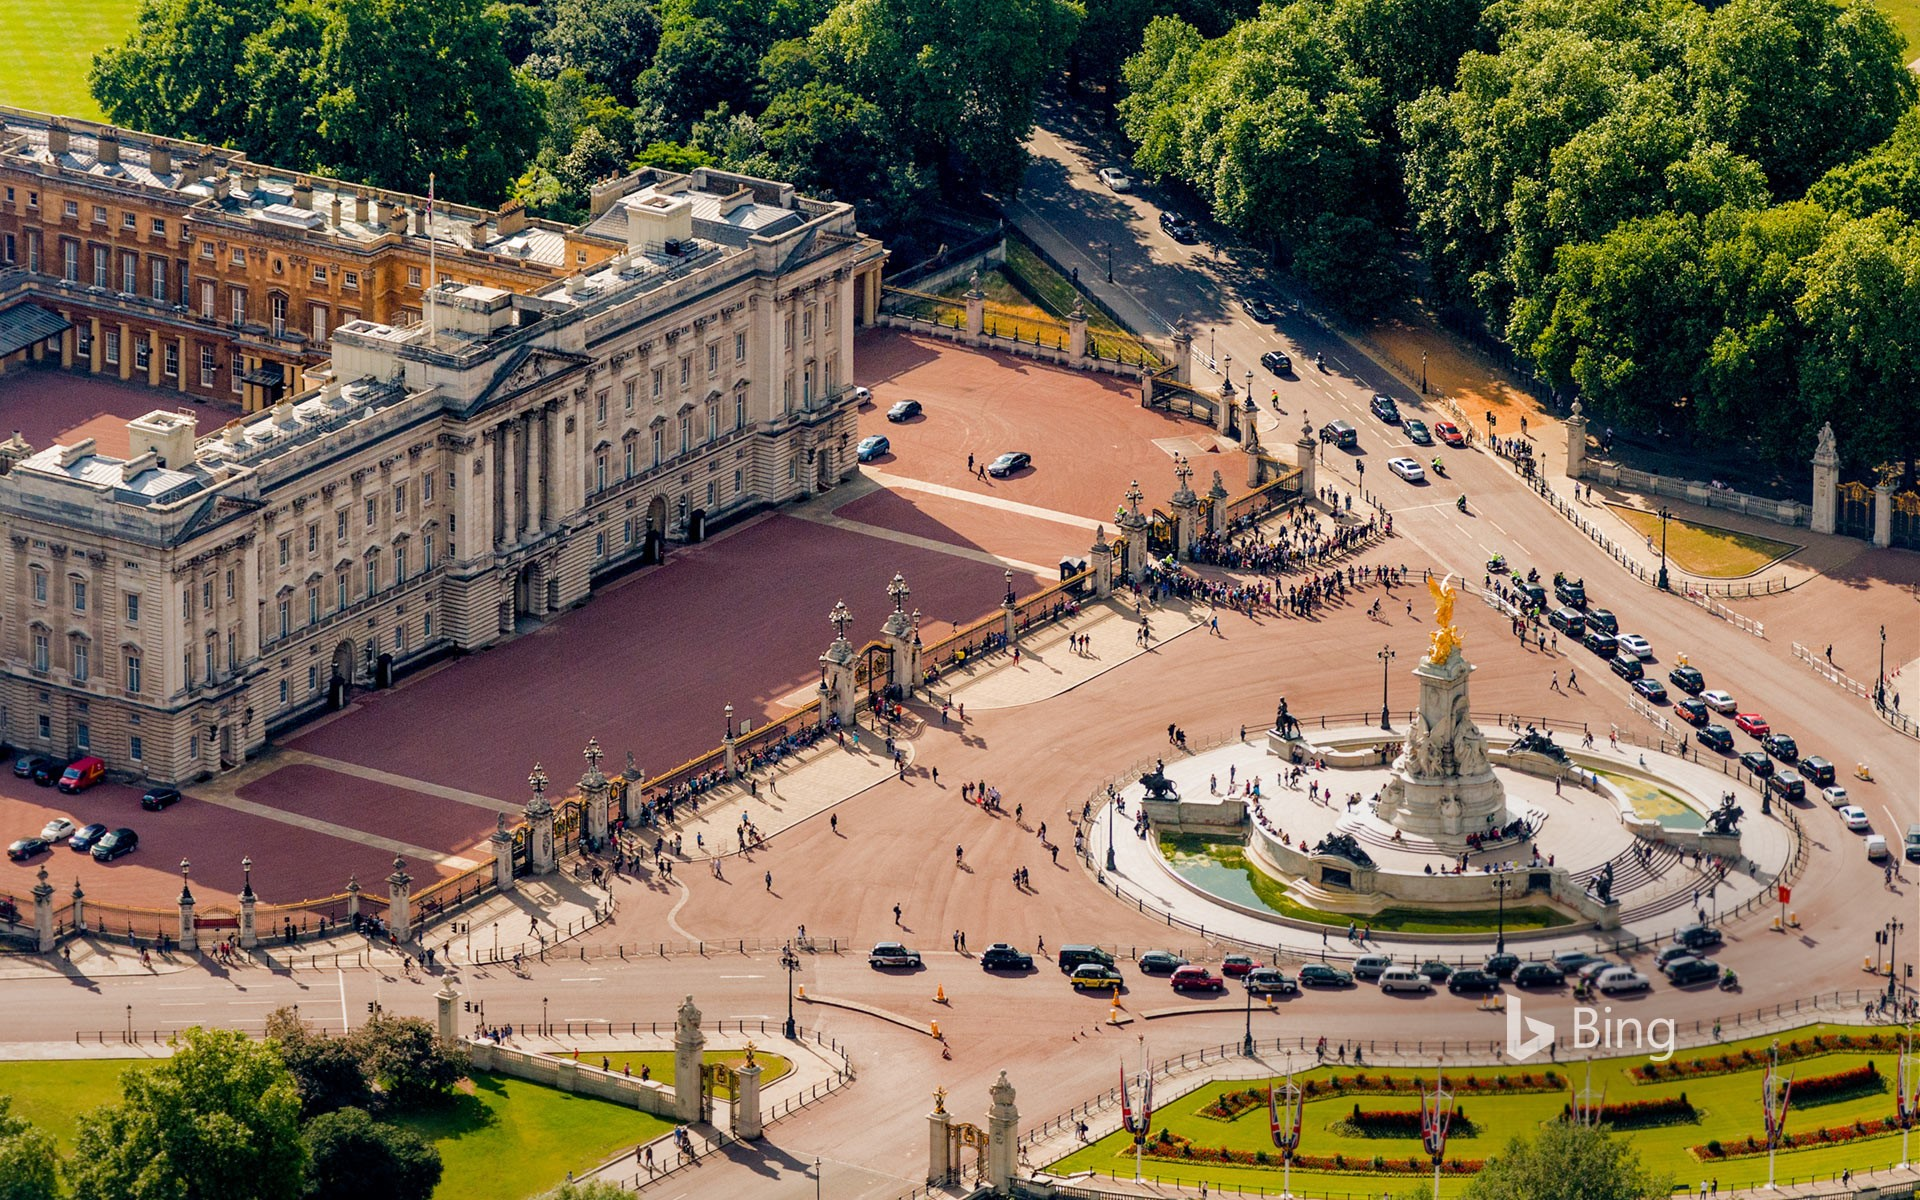 Buckingham Palace and Victoria Memorial for Queen Victoria's bicentennial year